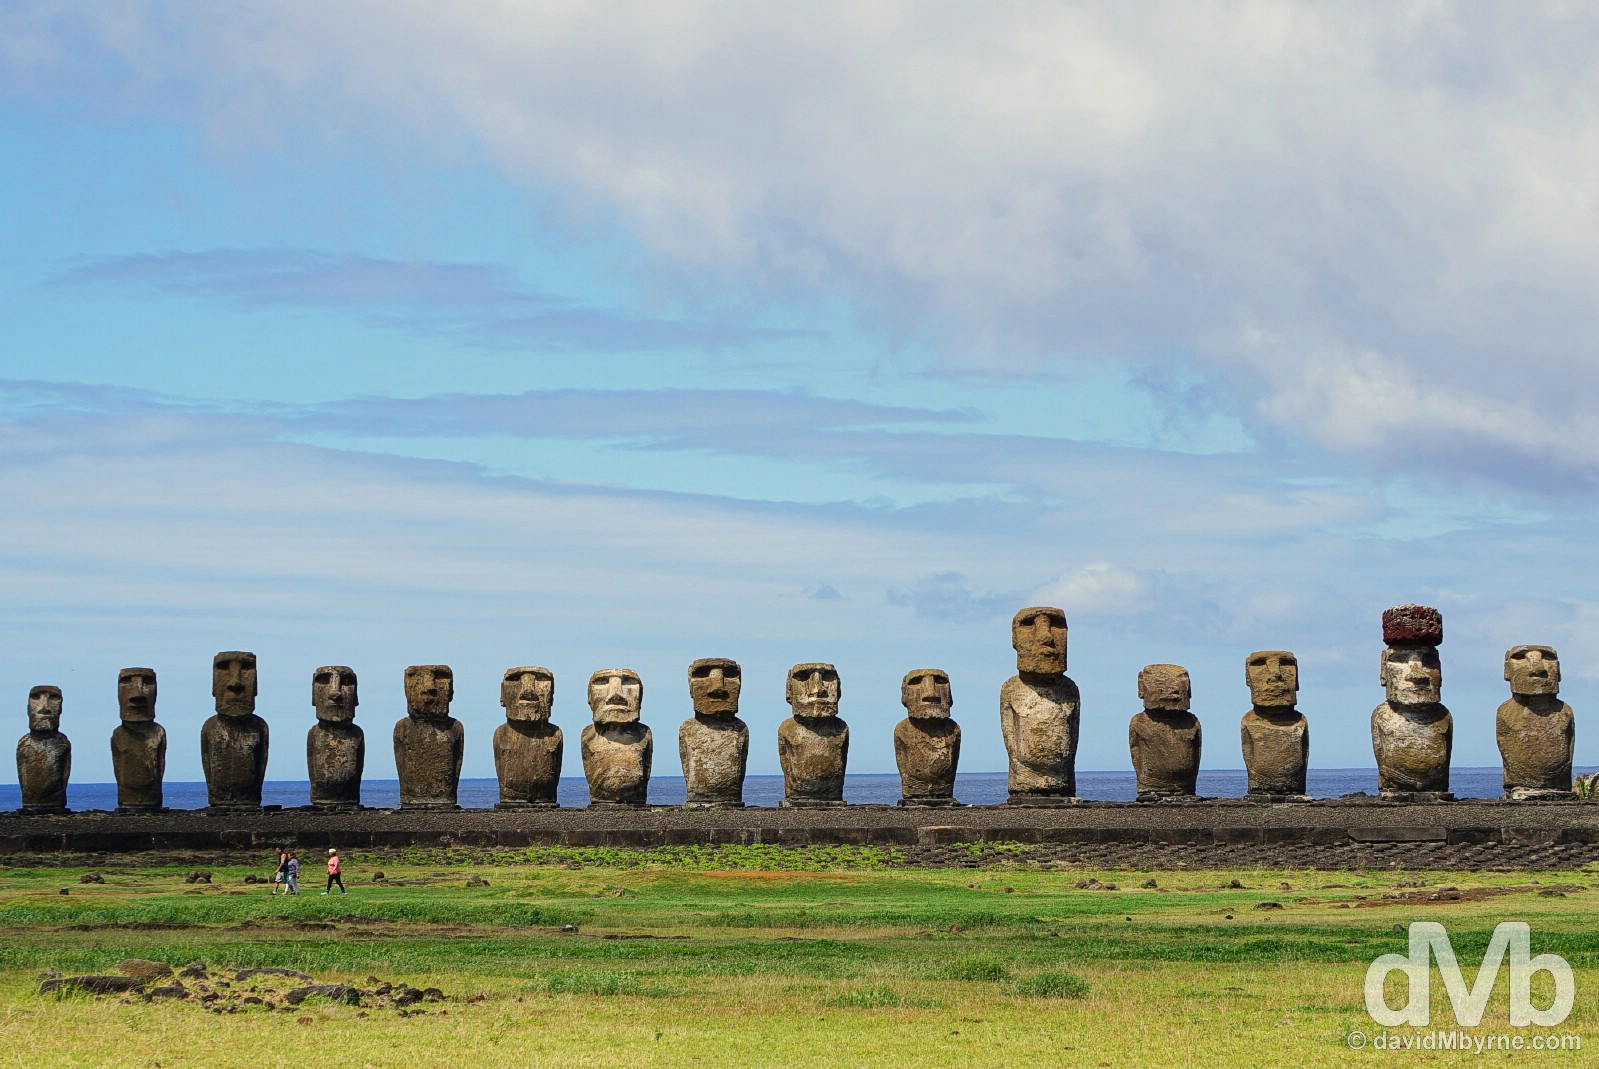 The 15 moai of Ahu Tongariki, Easter Island, Chile. October 1, 2015.